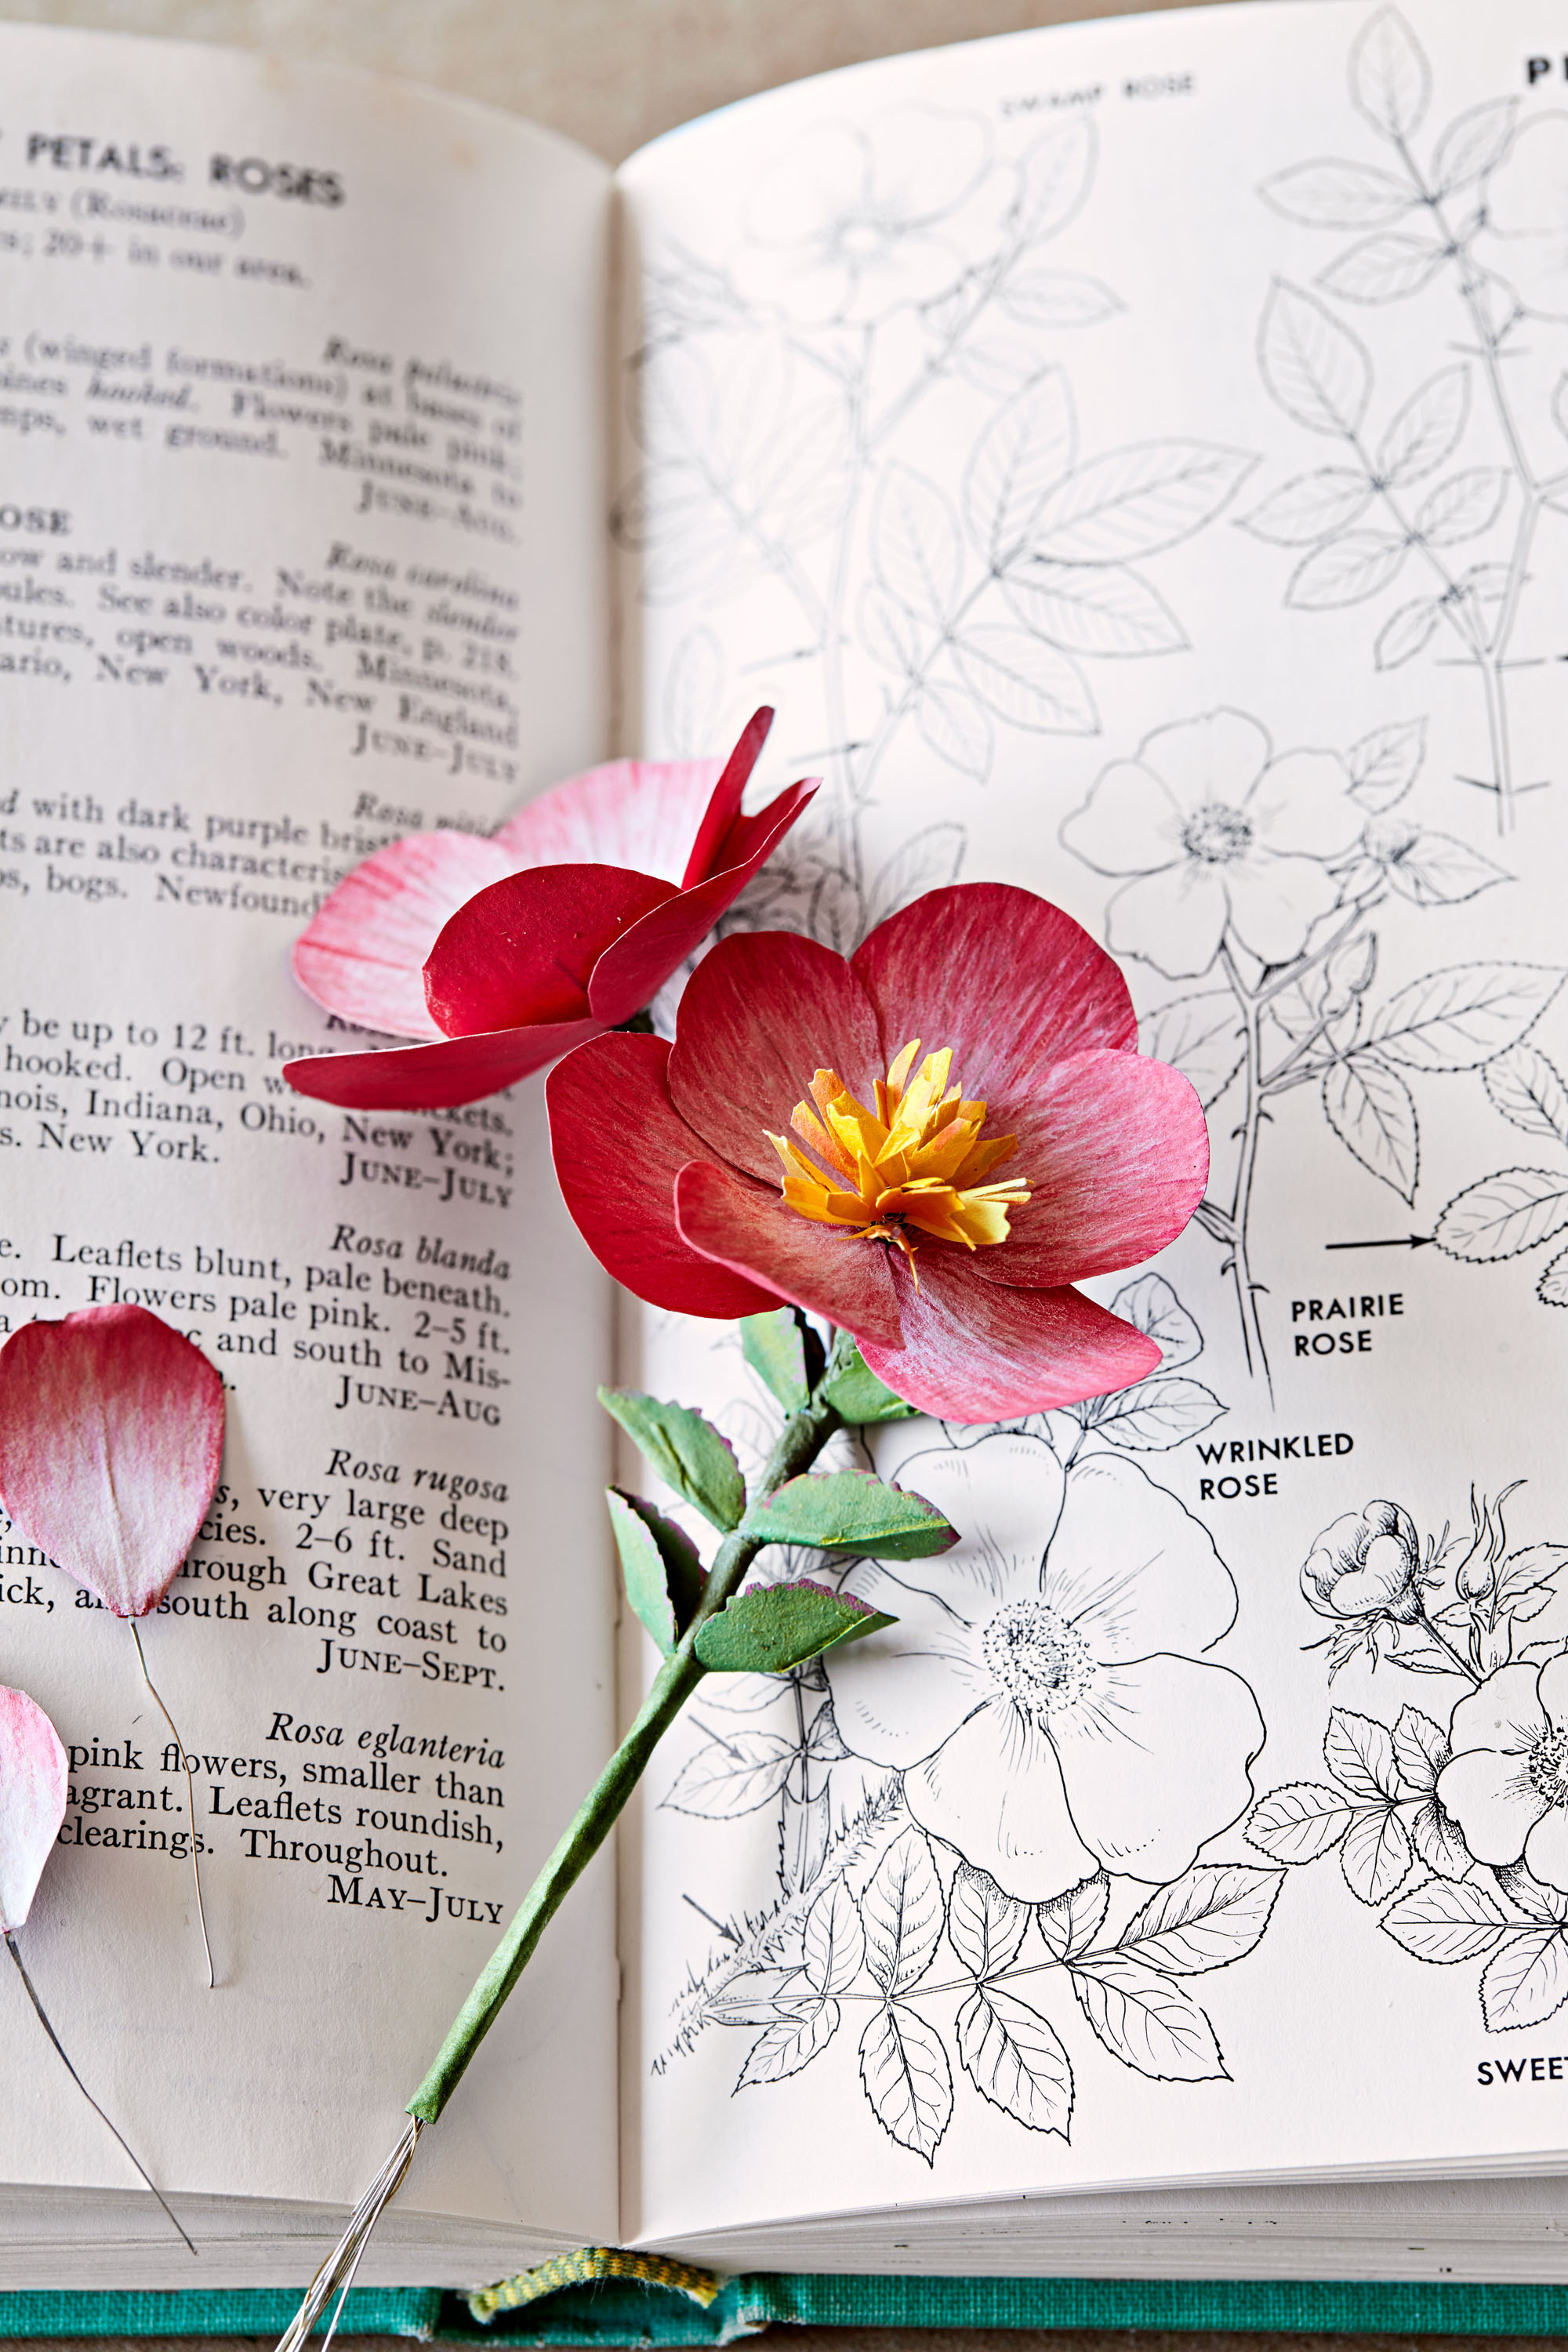 sculptural paper begonias propped up in an open botanical book